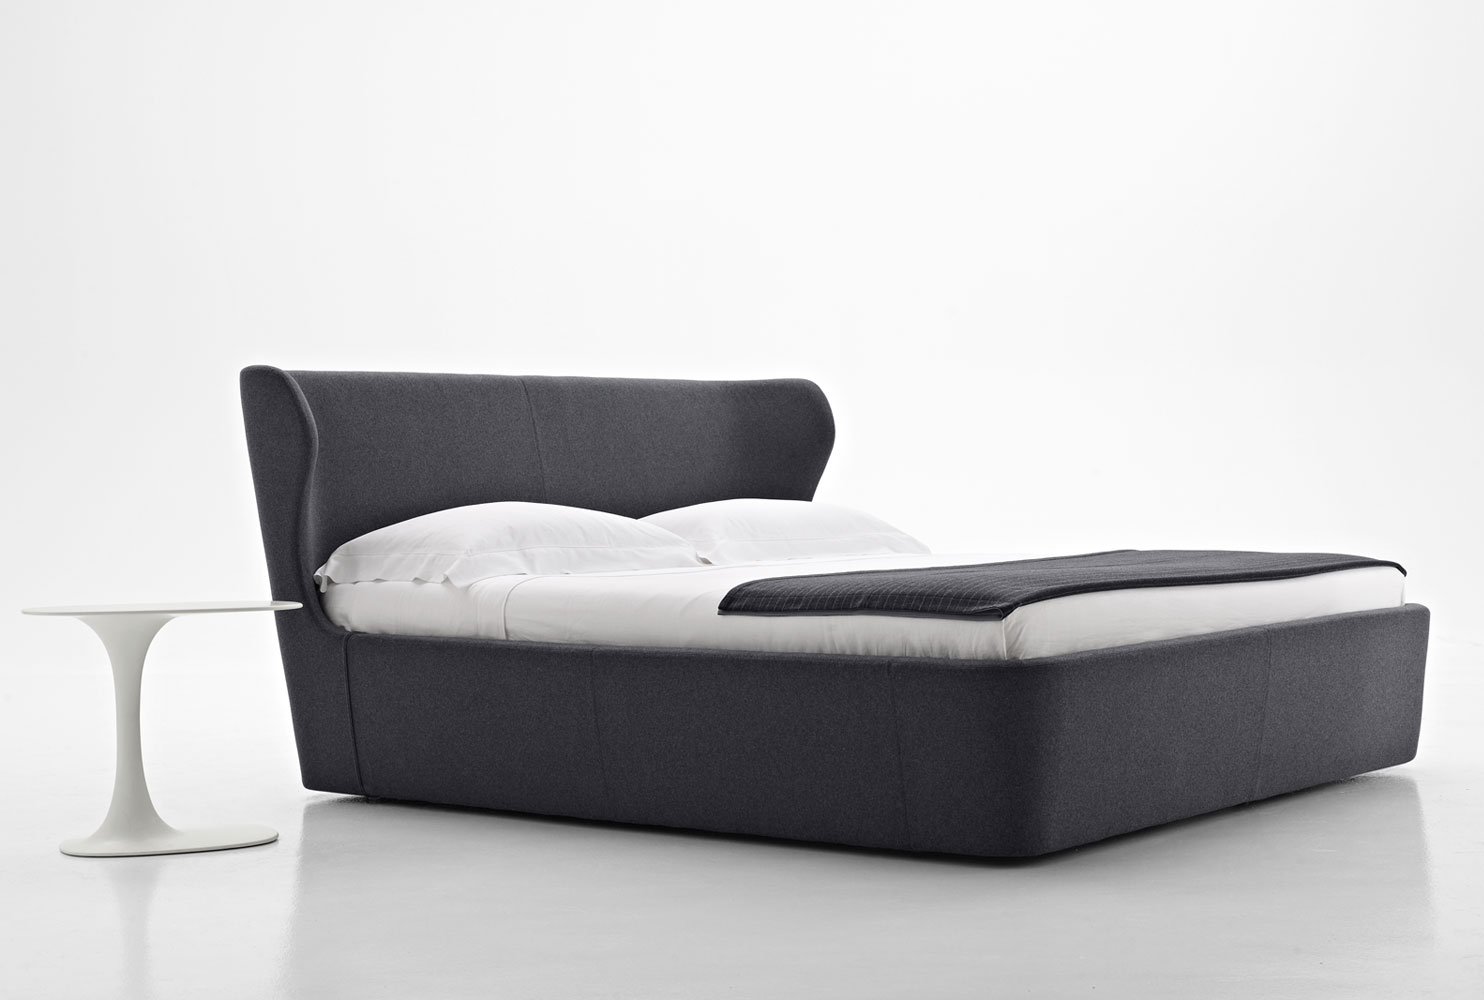 b b italia papilio bed buy from campbell watson uk. Black Bedroom Furniture Sets. Home Design Ideas